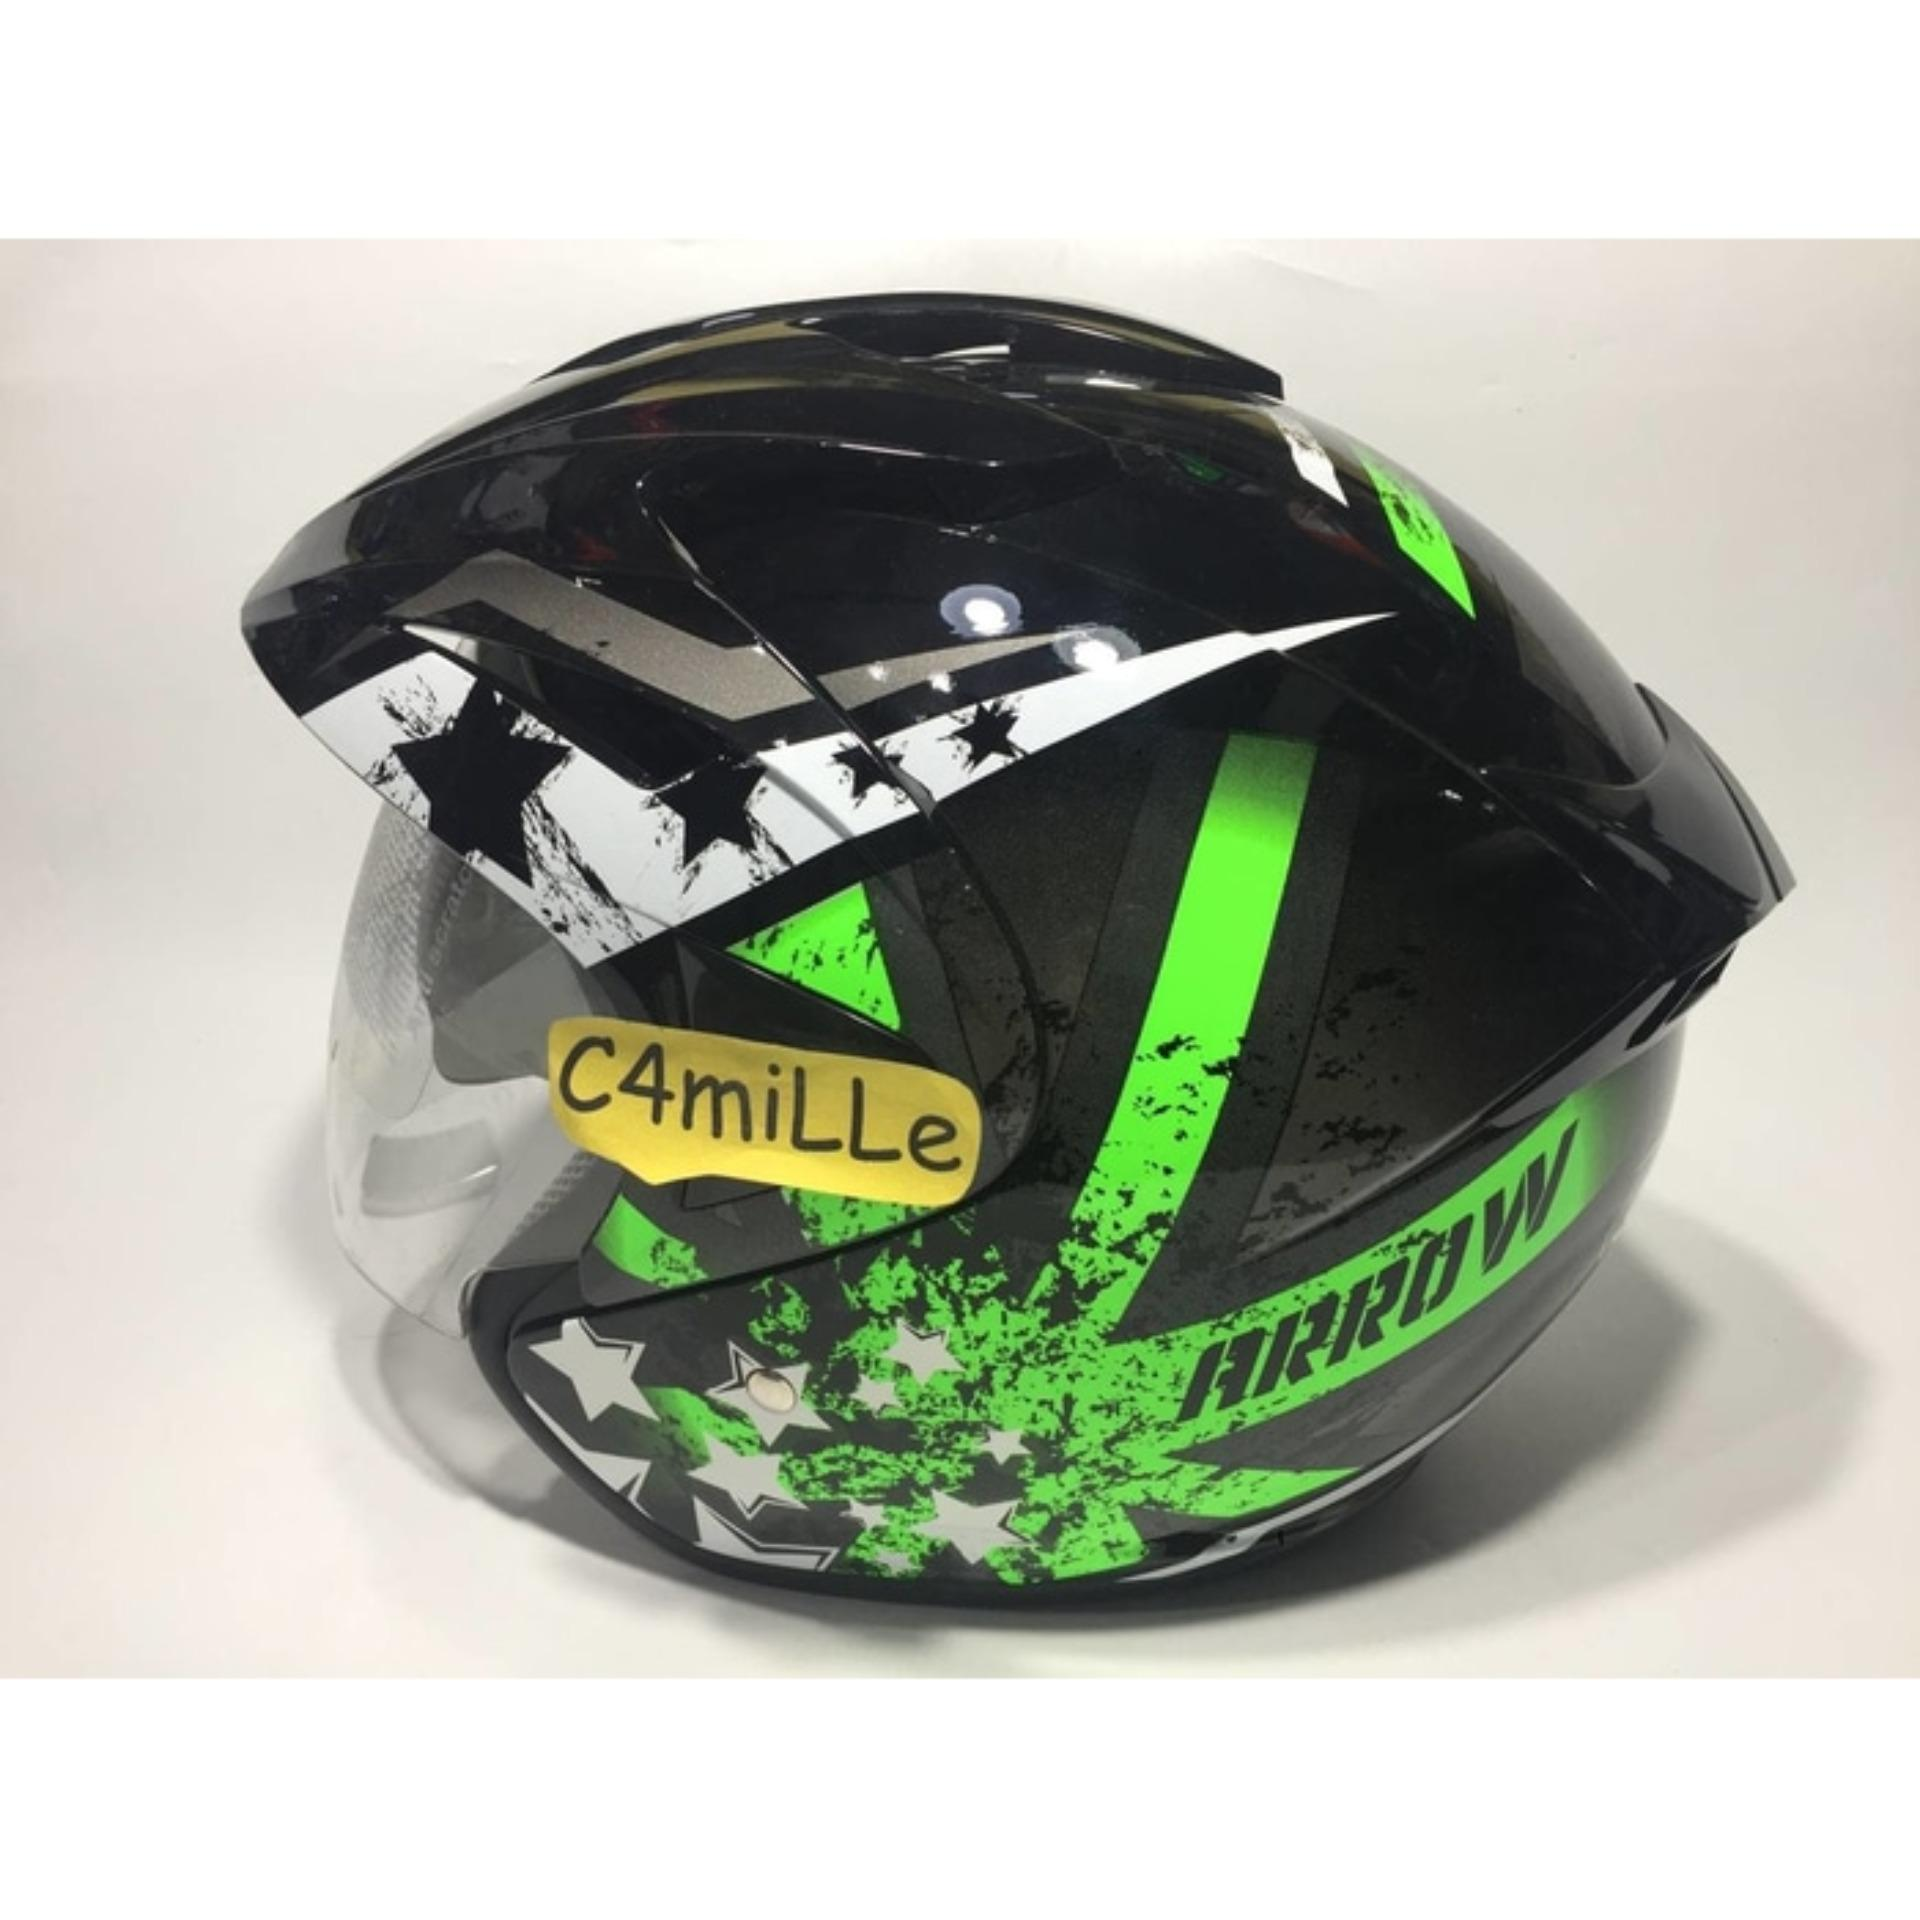 Harga Helm Hiu Arrow Black Green Fluo Double Visor Half Face Termahal